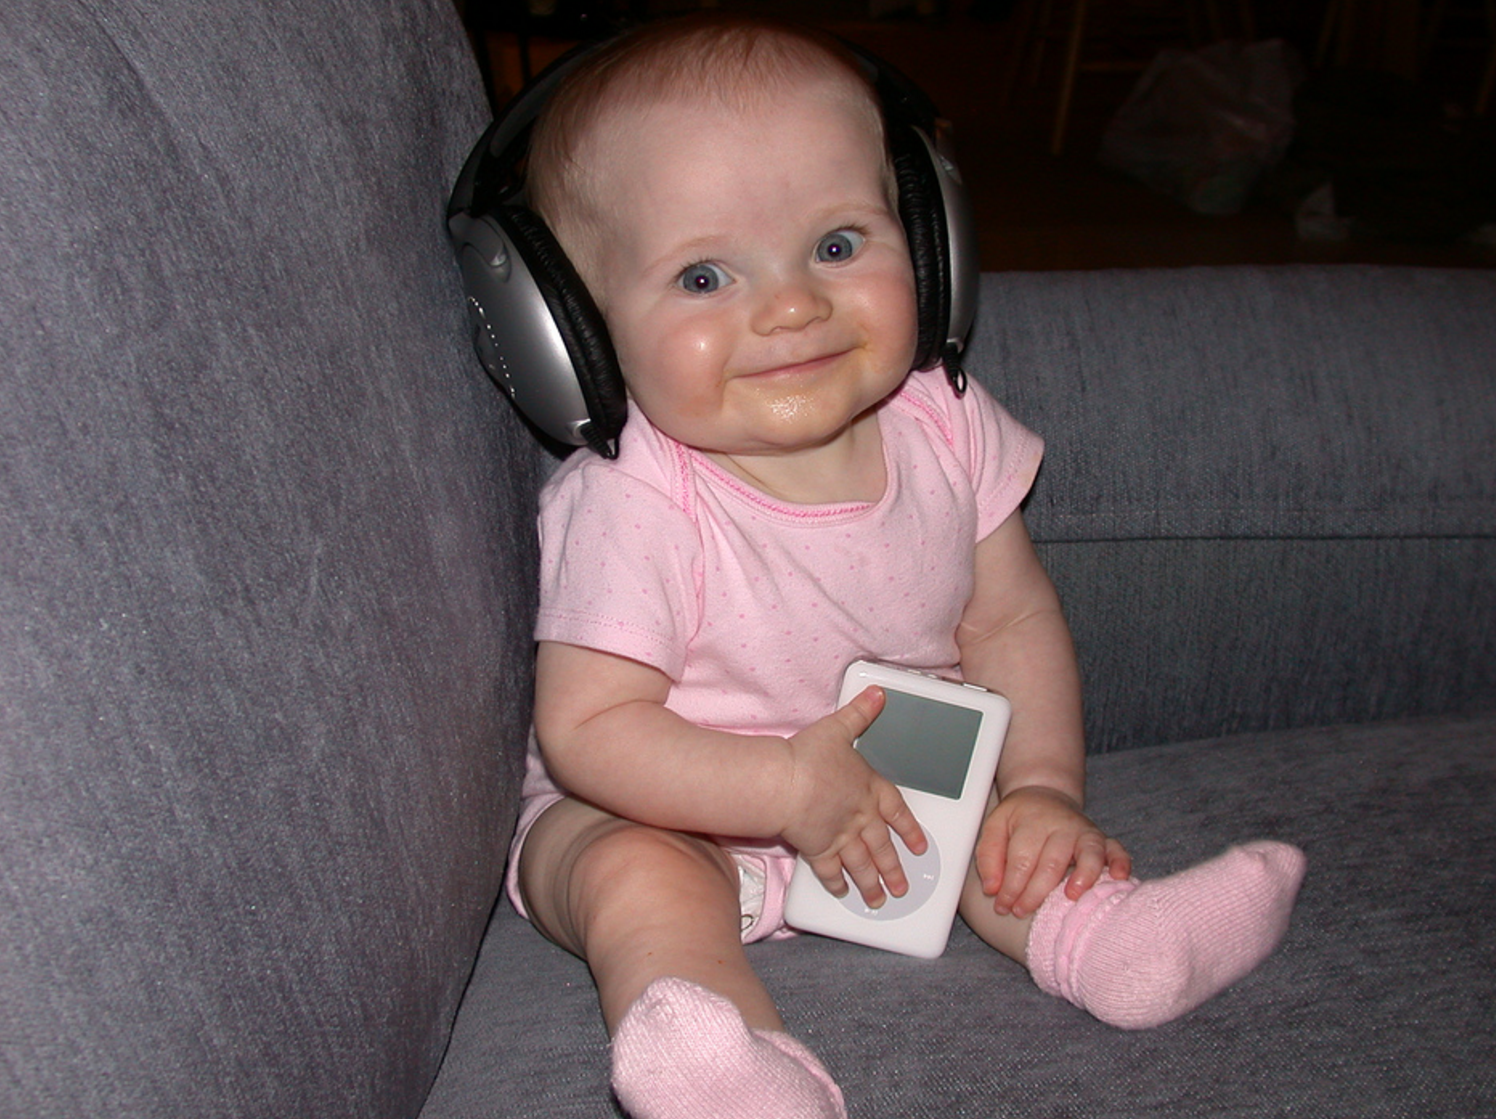 Adults and Babies Alike Love Pop Song Predictability Because Psychology